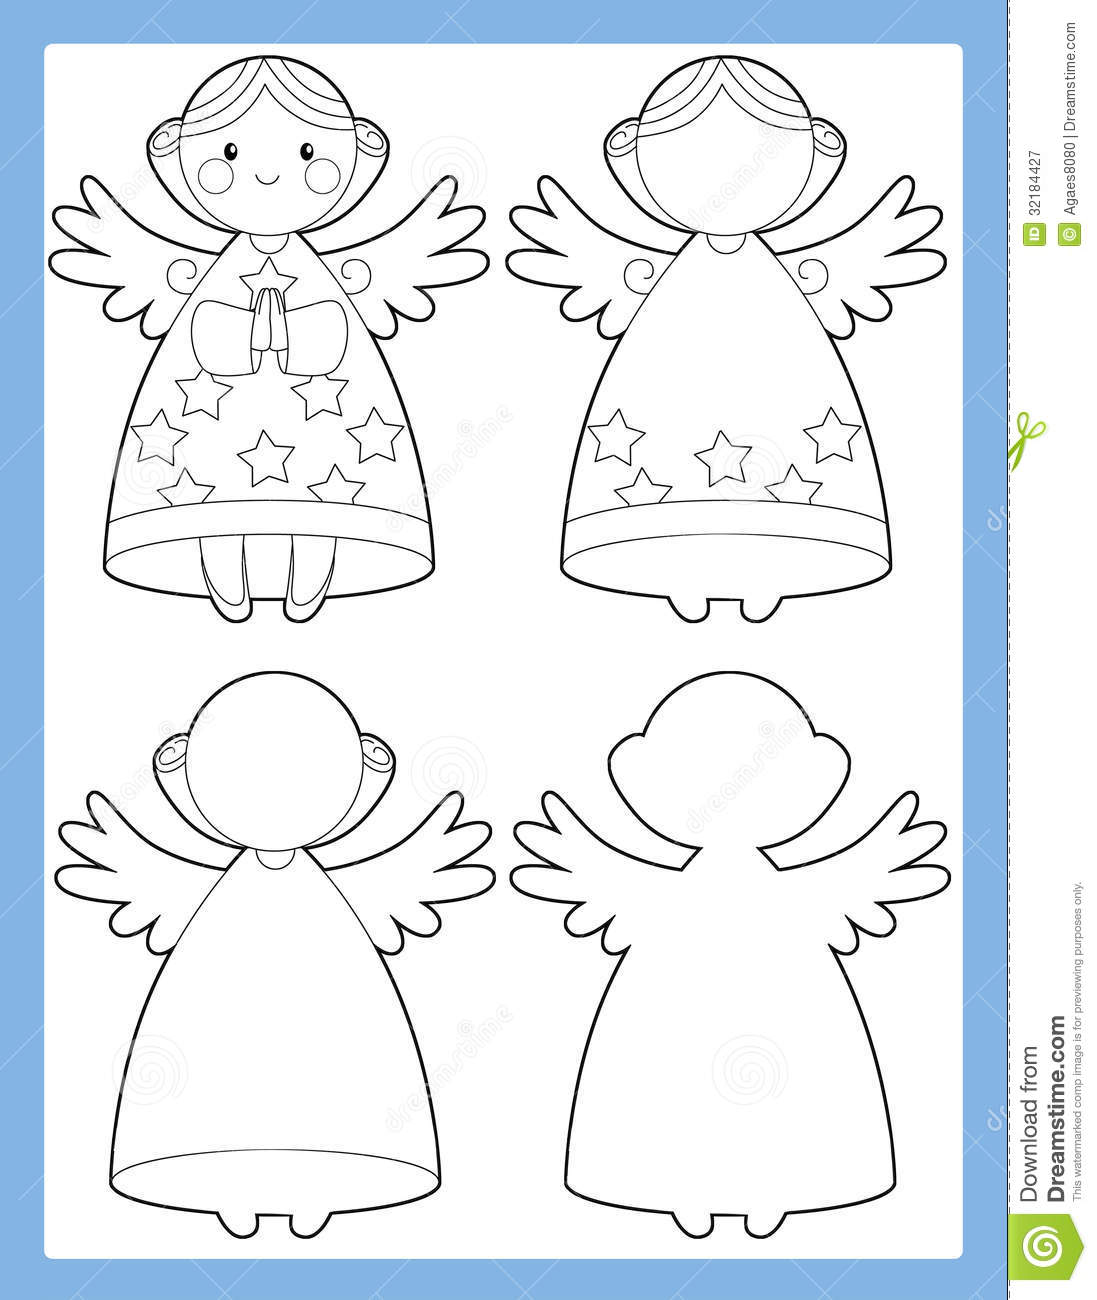 royalty free stock photo download the coloring page - Coloring Pages Beautiful Angels